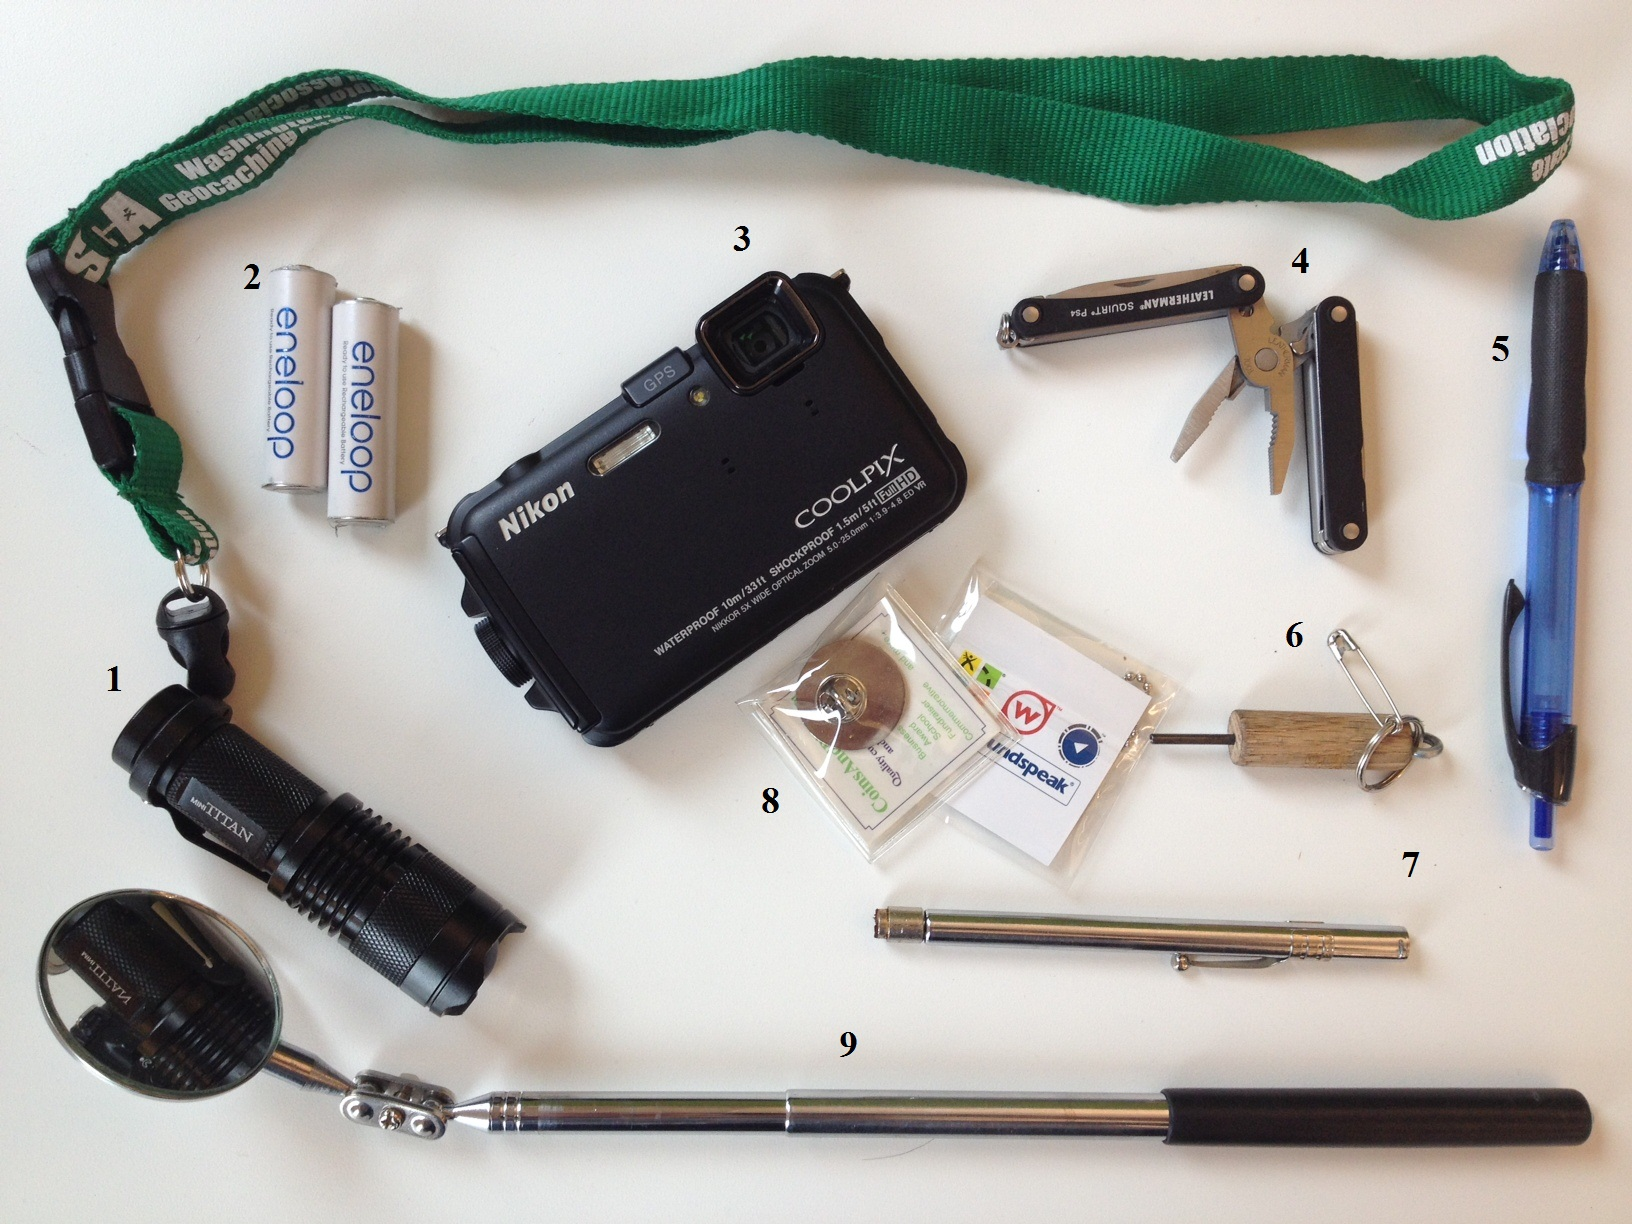 Here are 9 Geocaching Tools – What Else Should You Pack?